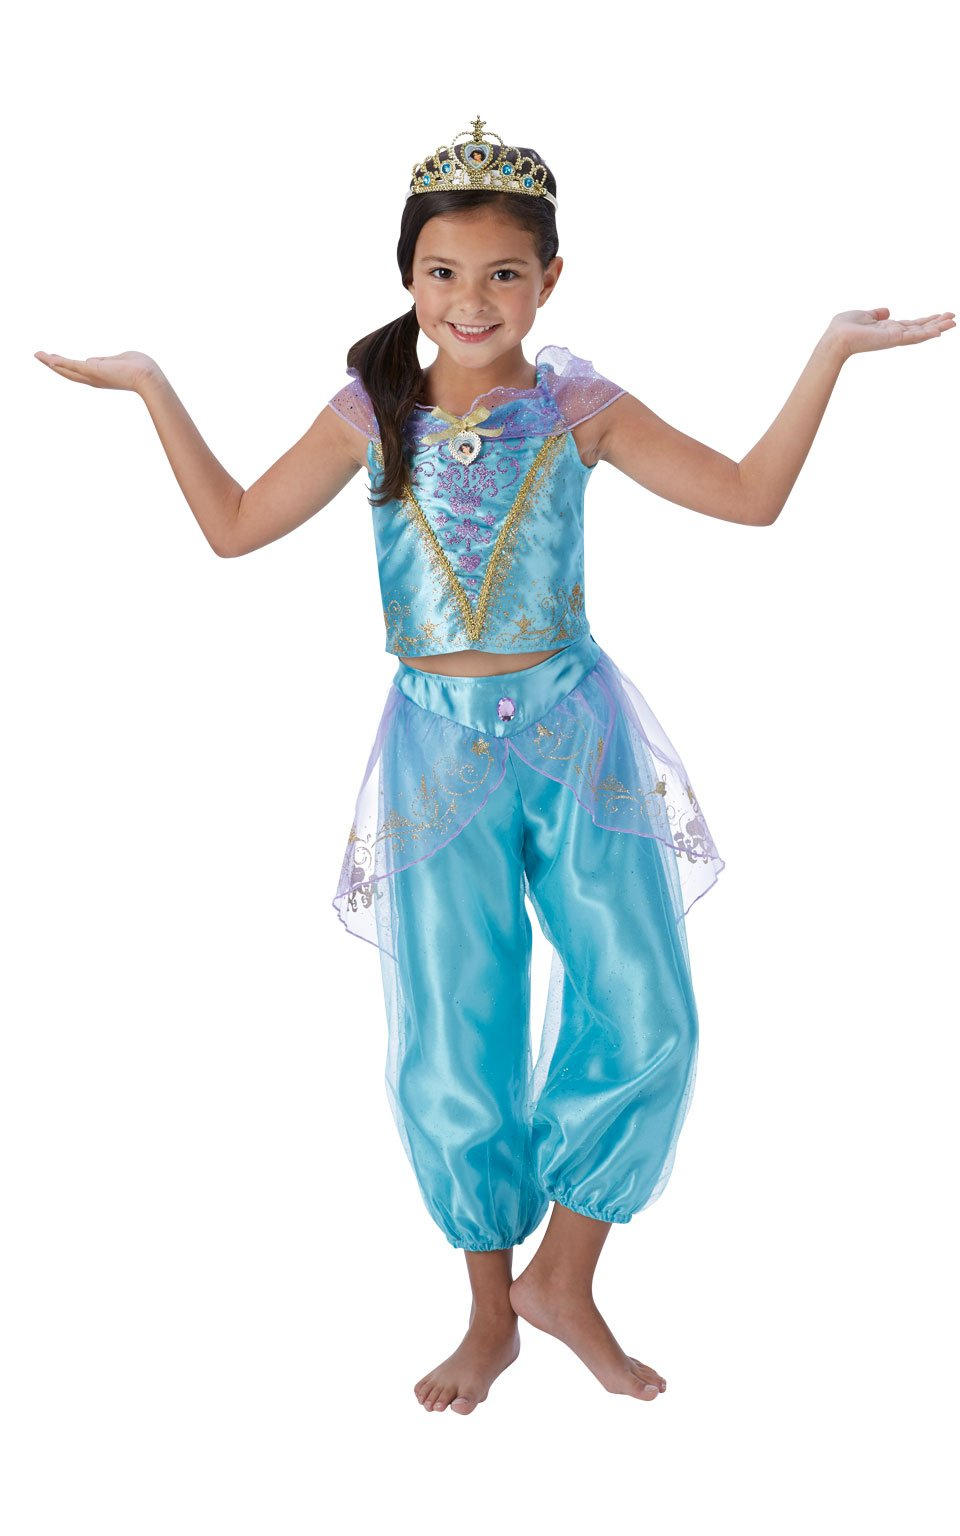 Rubieu0027s Official Disney Princess Jasmine Aladdin Childs Deluxe Costume Medium 5-6 Years  sc 1 st  Amazon UK & Jasmine Disney Costume: Amazon.co.uk